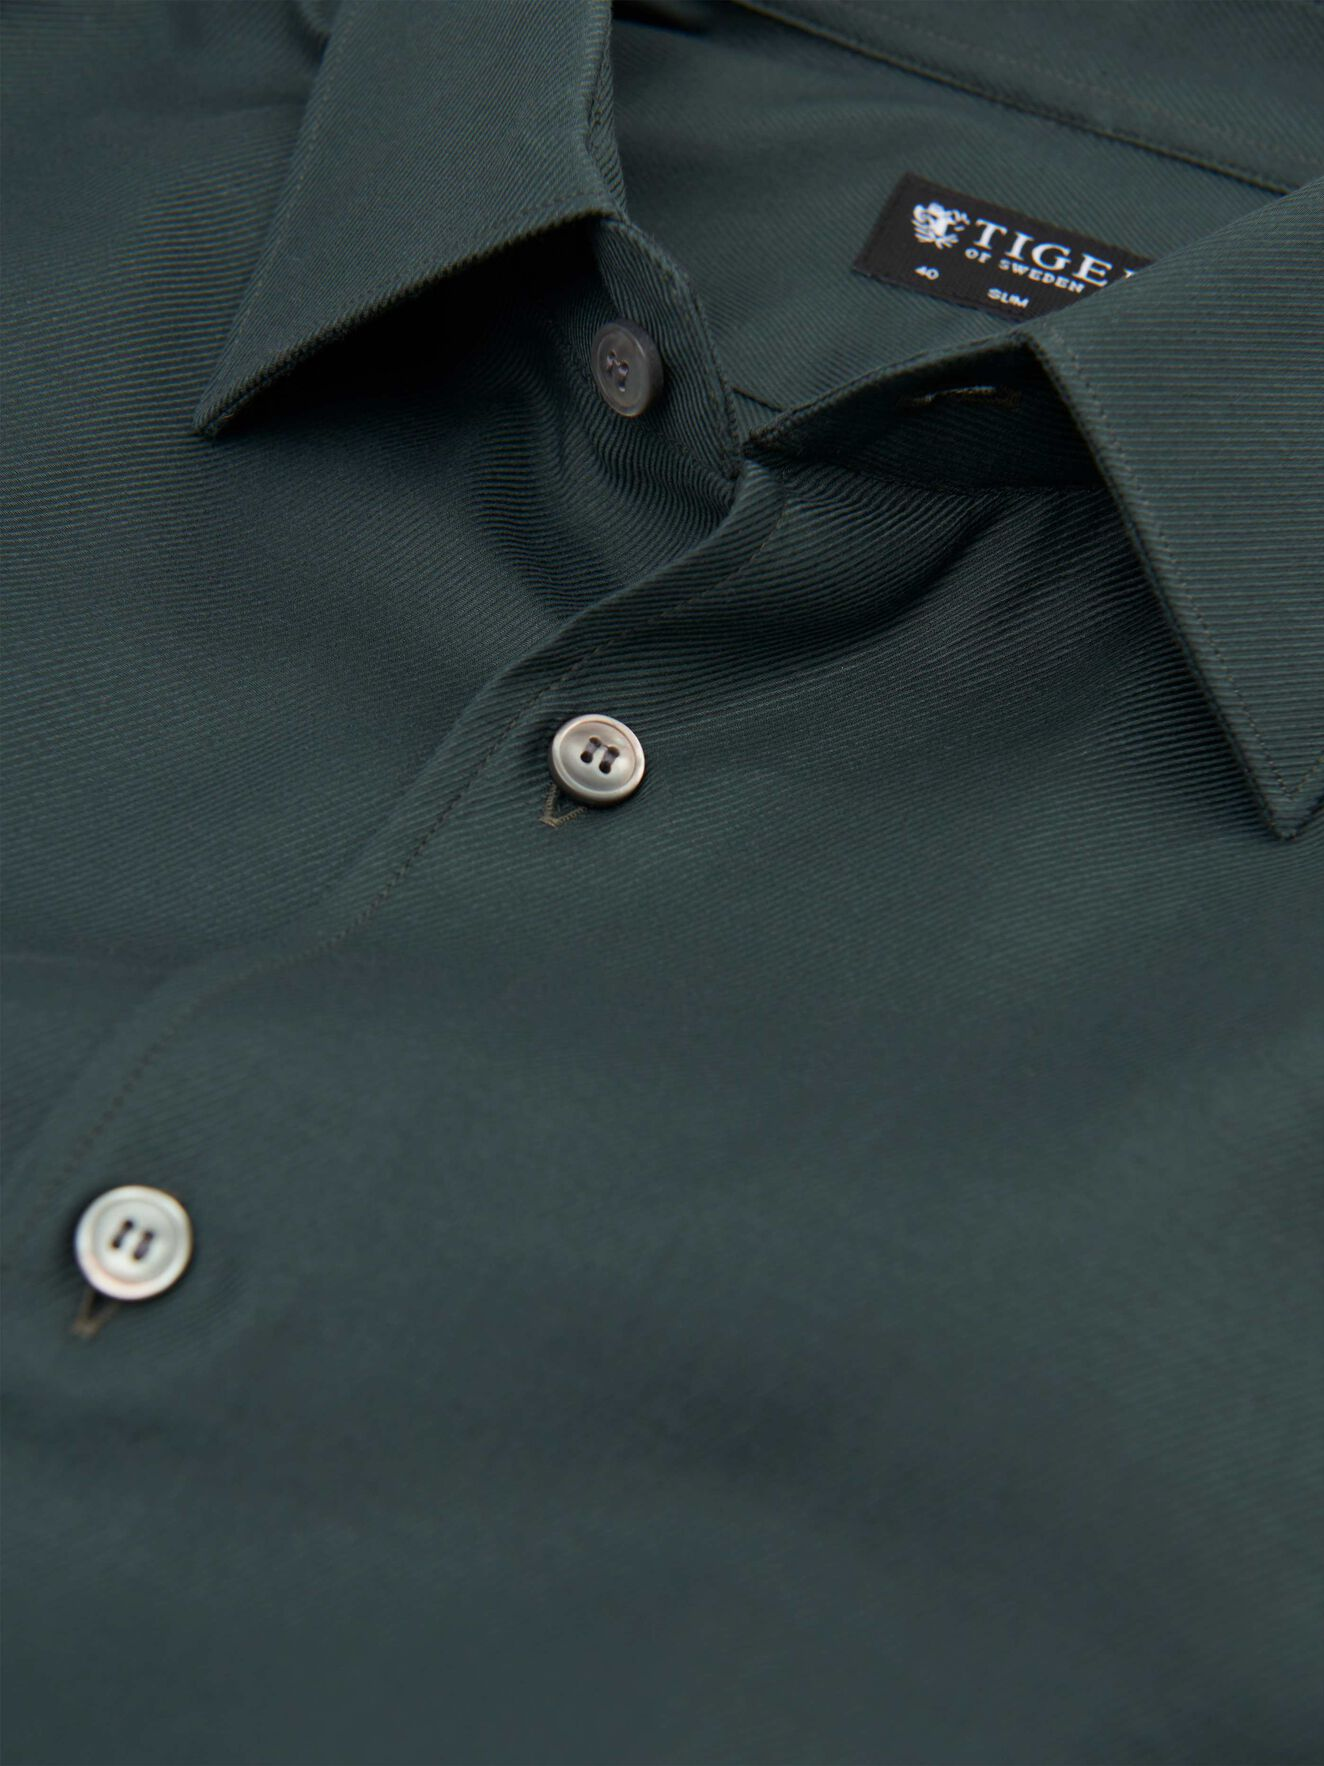 Farrell Shirt in Wood Green from Tiger of Sweden